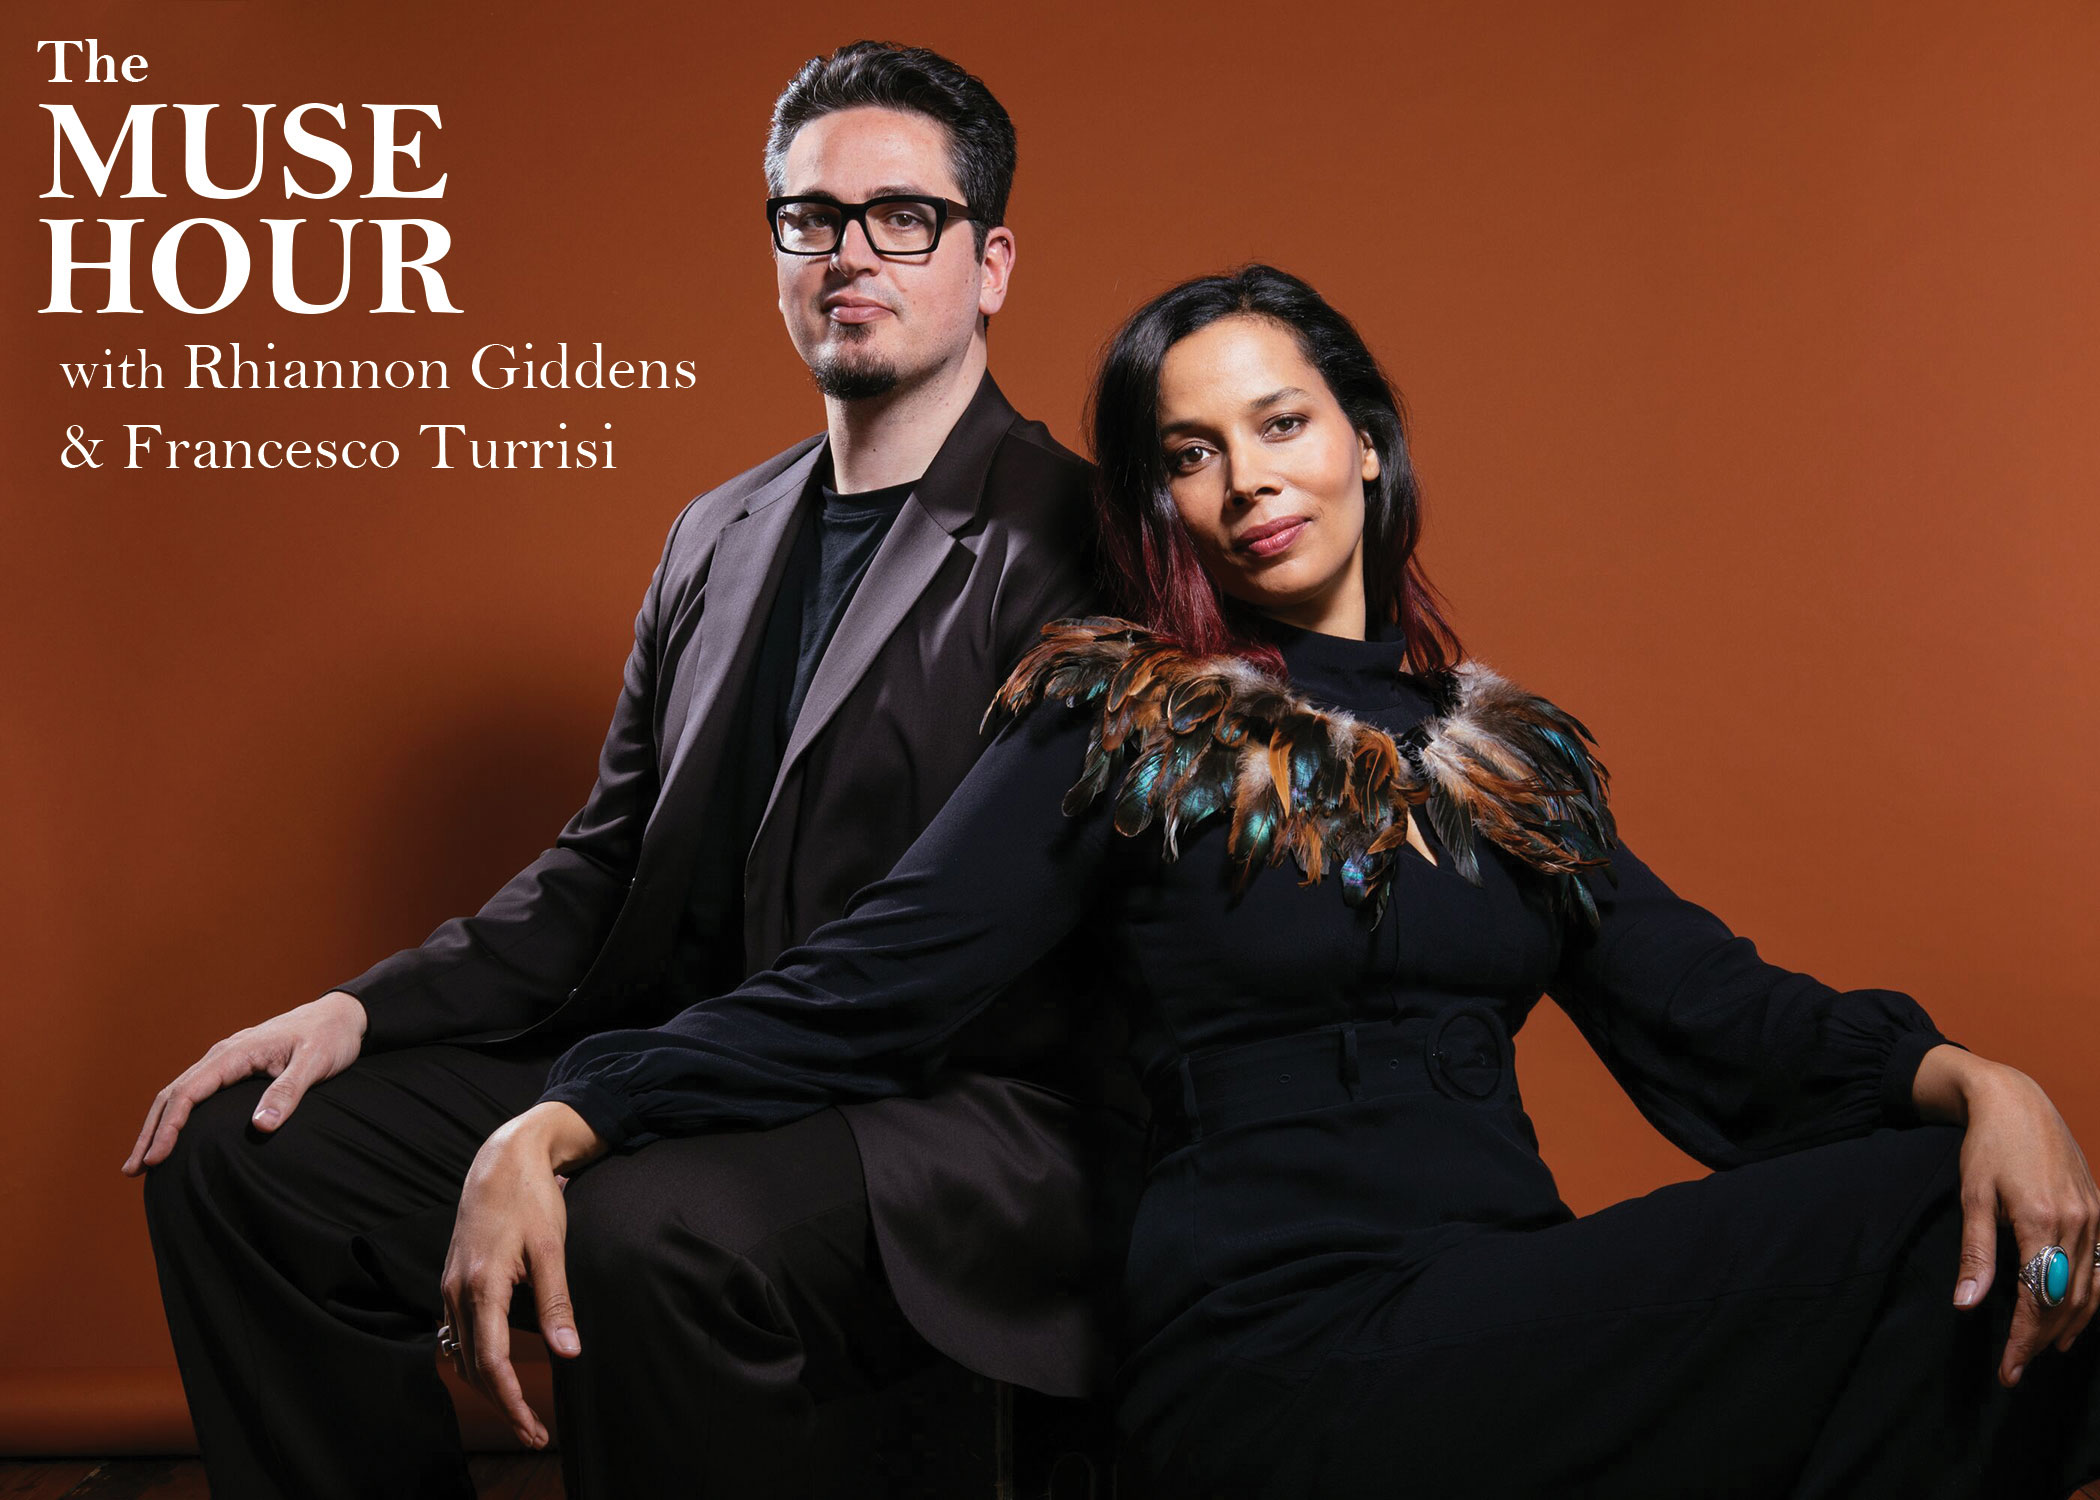 The Muse Hour with Rhiannon Giddens and Francesco Turrisi